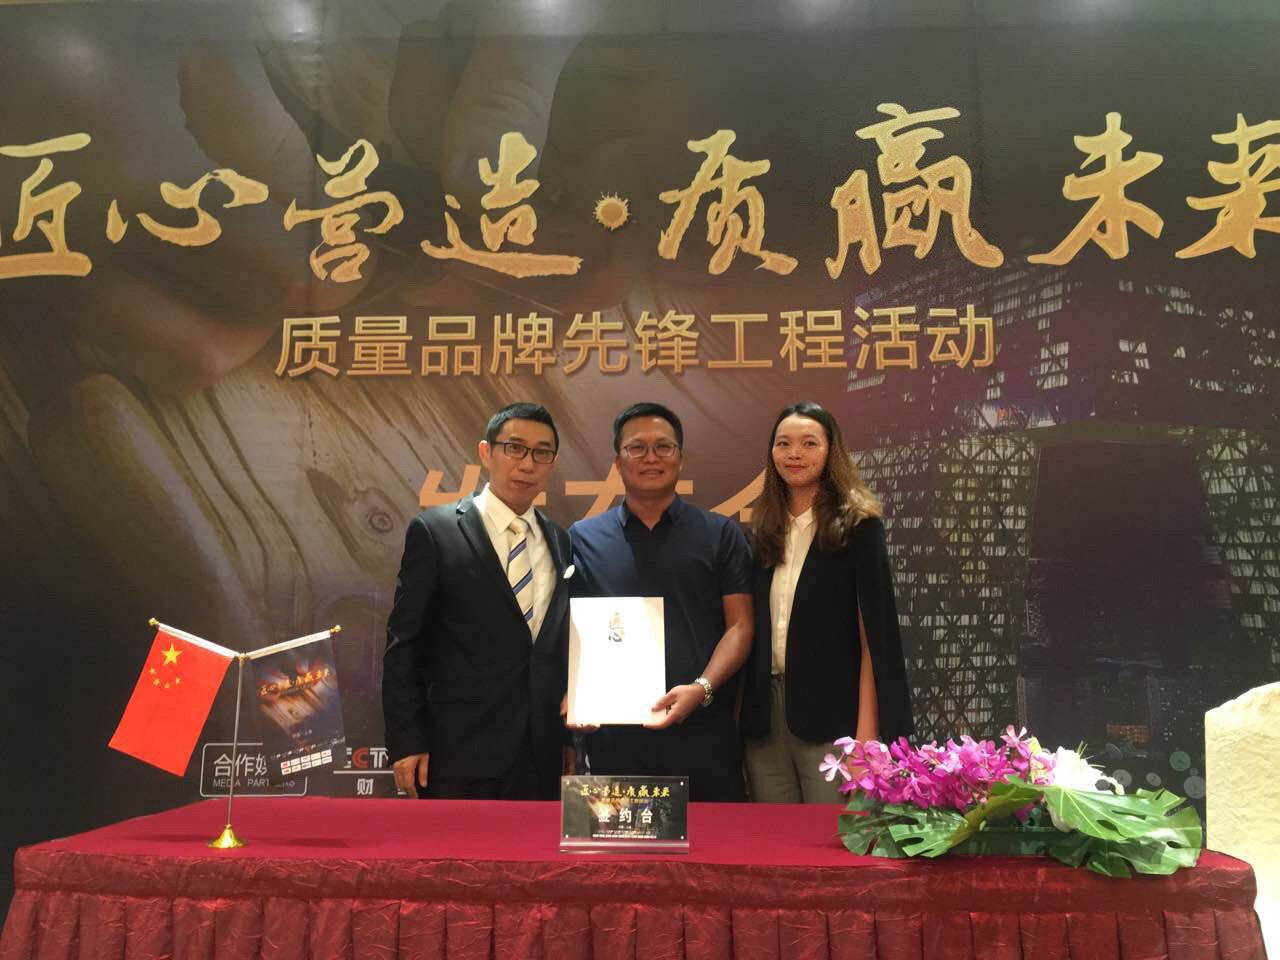 JLH-Jinlongheng accepts CCTV interview: Chinese dream, we are in action - Jinlongheng Furniture Co,l-1